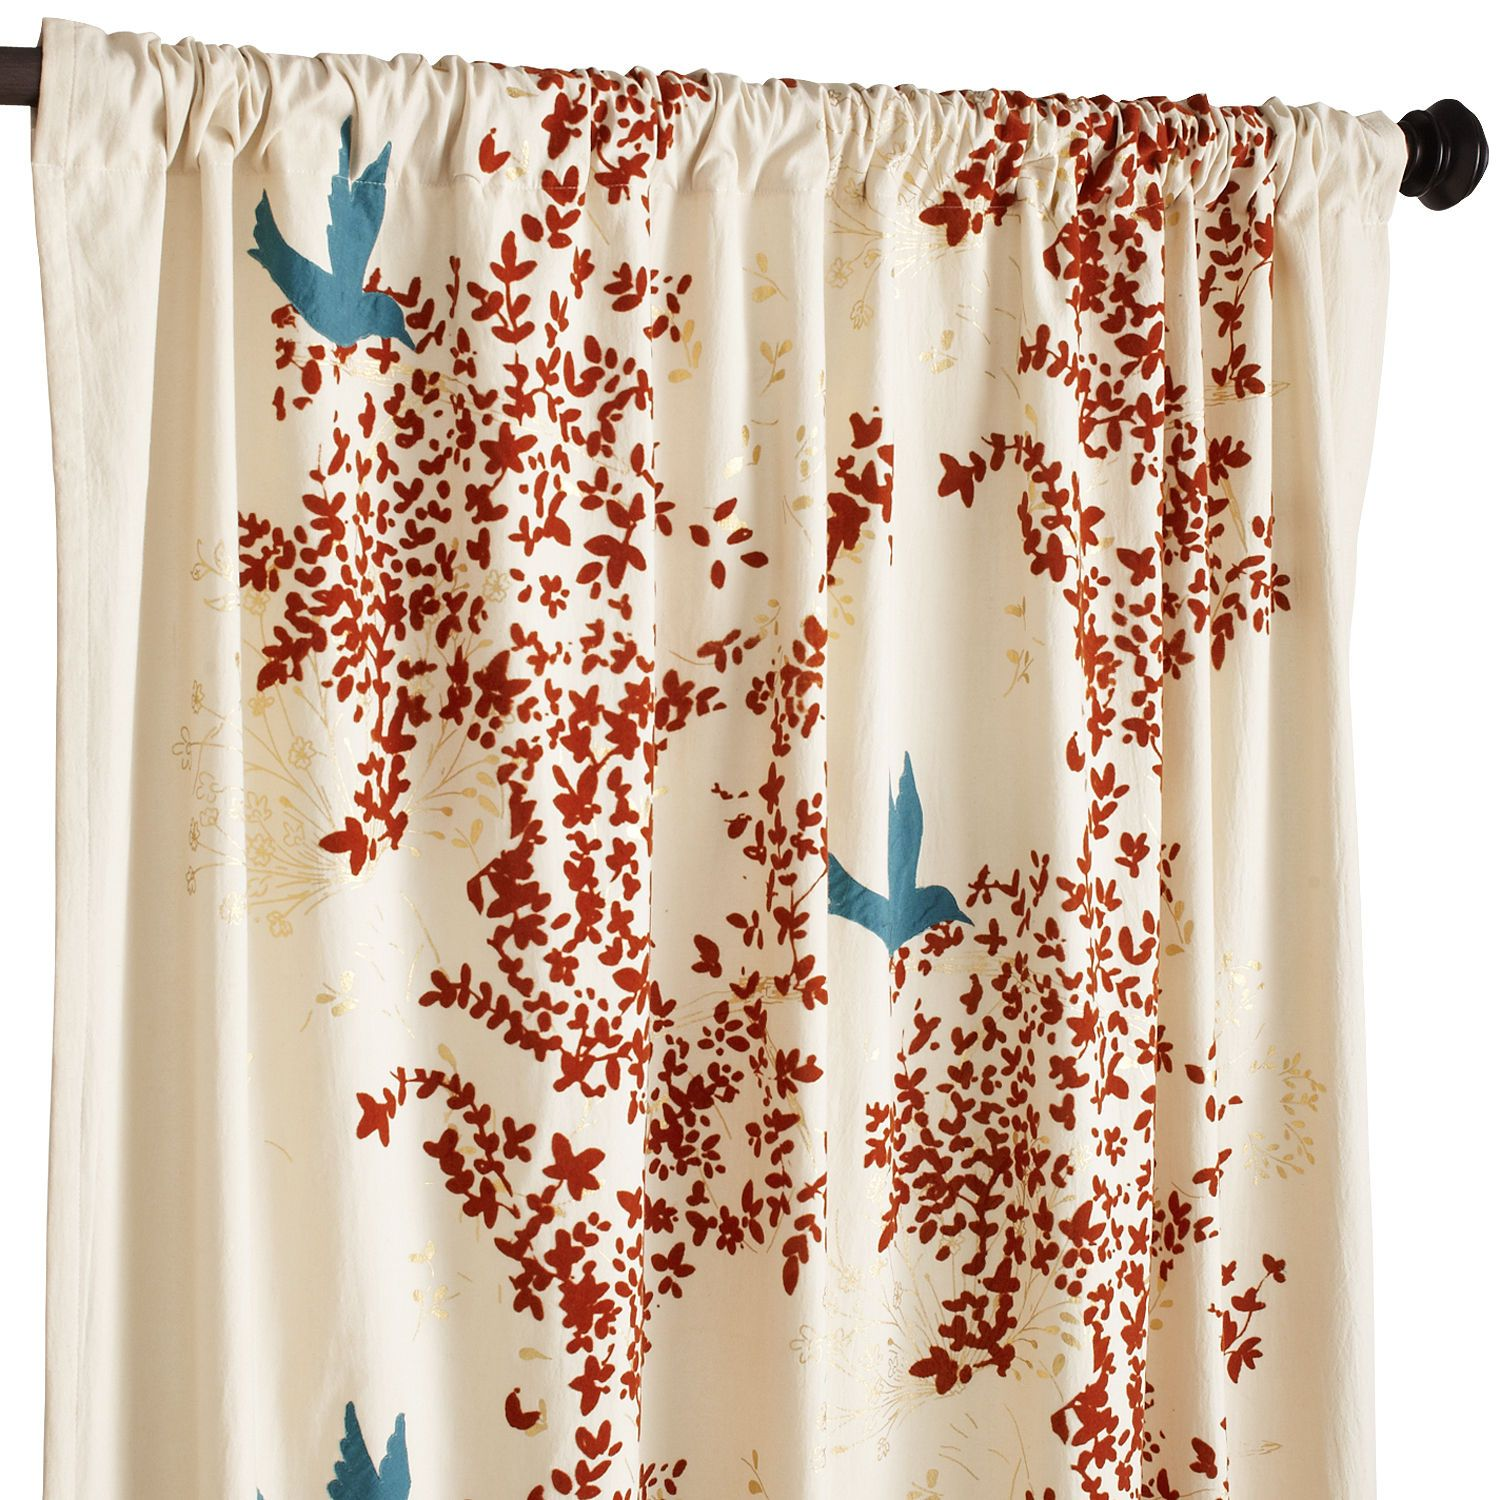 These Are Gorgeous And You Offset The Teal Tones.Flocked Leaf Curtain | Pier  1